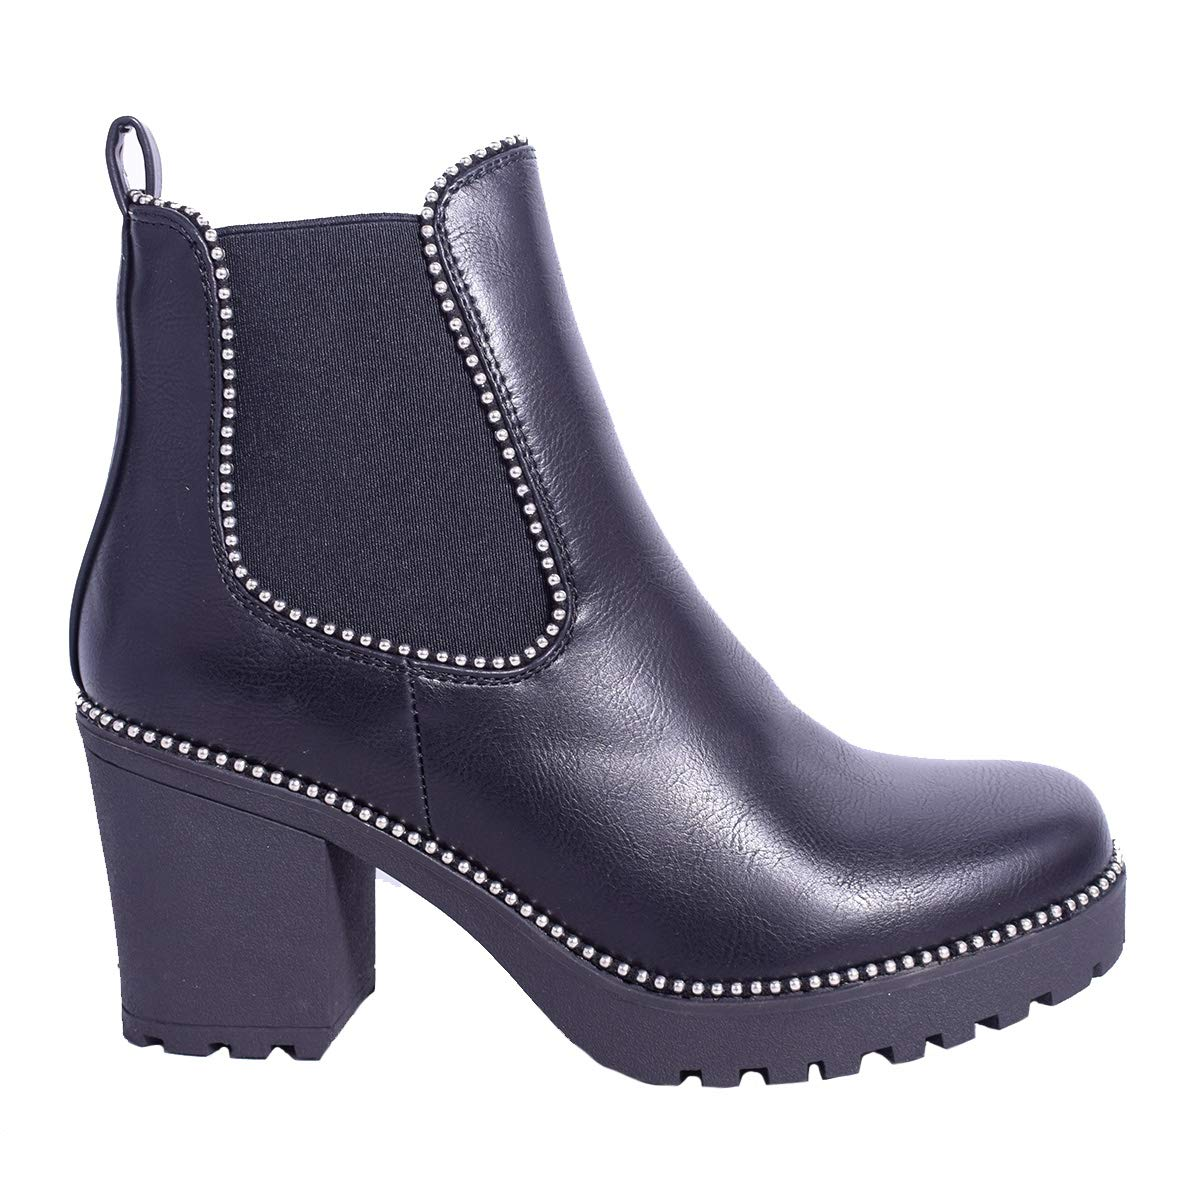 Ladies Womens New High Heel Zip Up Studded Chelsea Ankle Biker Boots Shoes Size